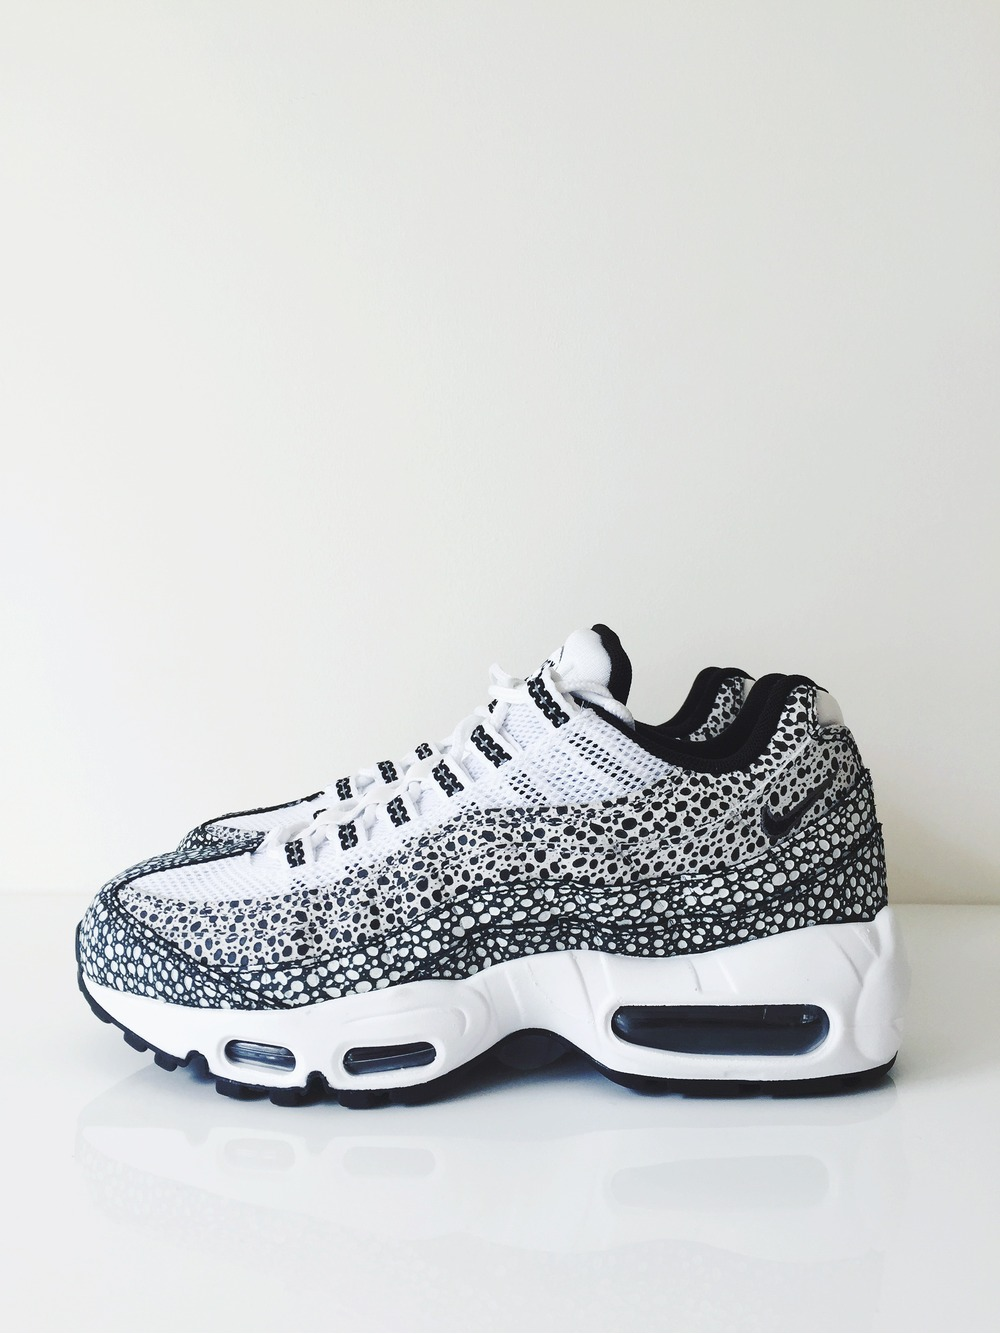 Air Max 95 Premium Safari